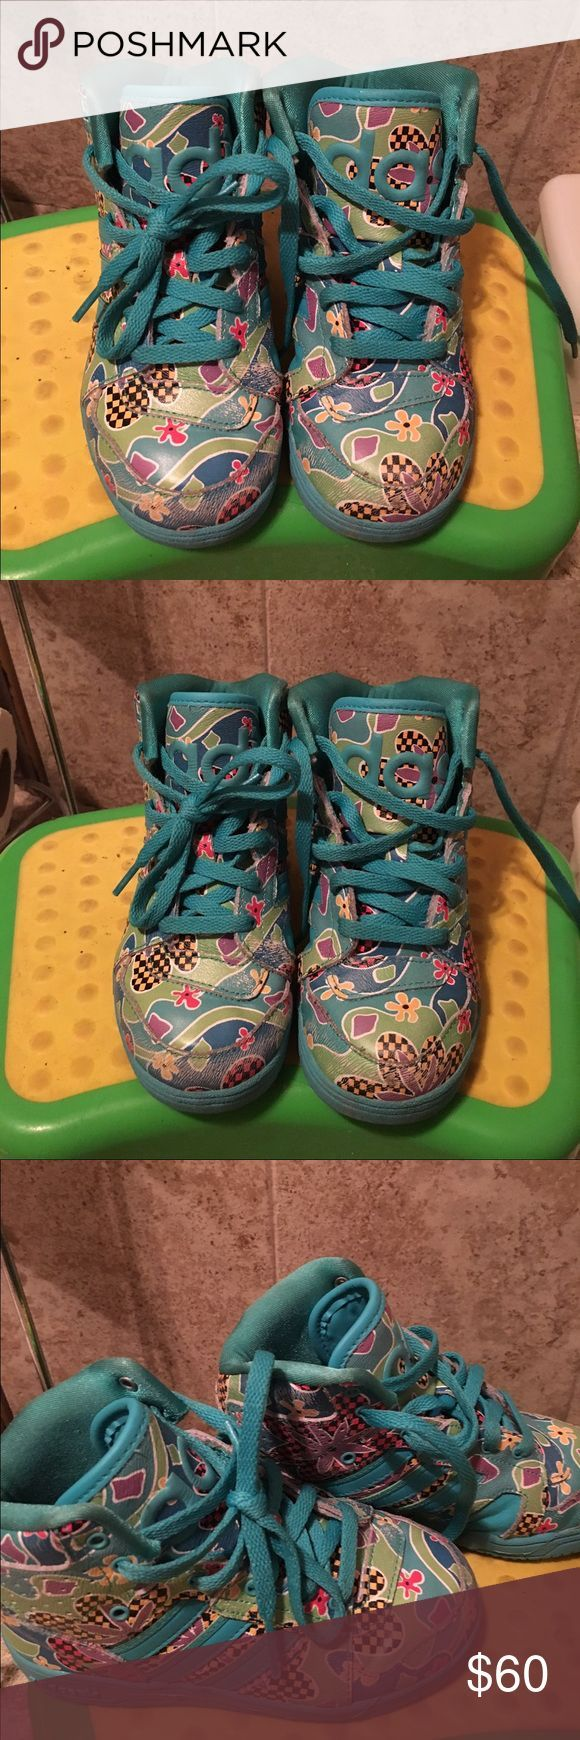 Cool Adidas Shoes Nice Adidas Shoes Clothing for kids and ...